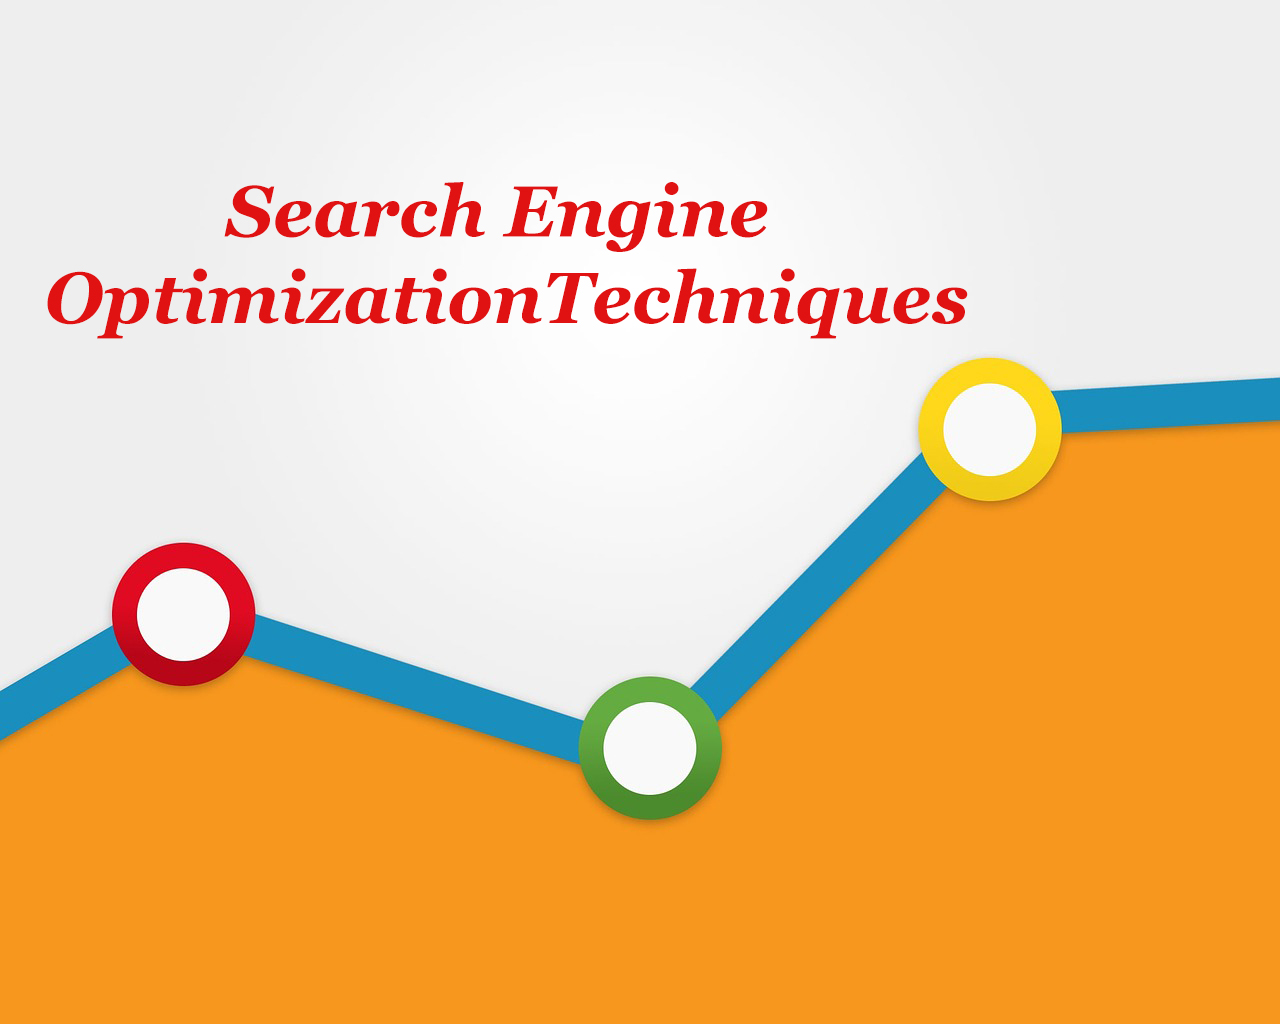 11 Search Engine Optimization Techniques That Worked For Me Diagram